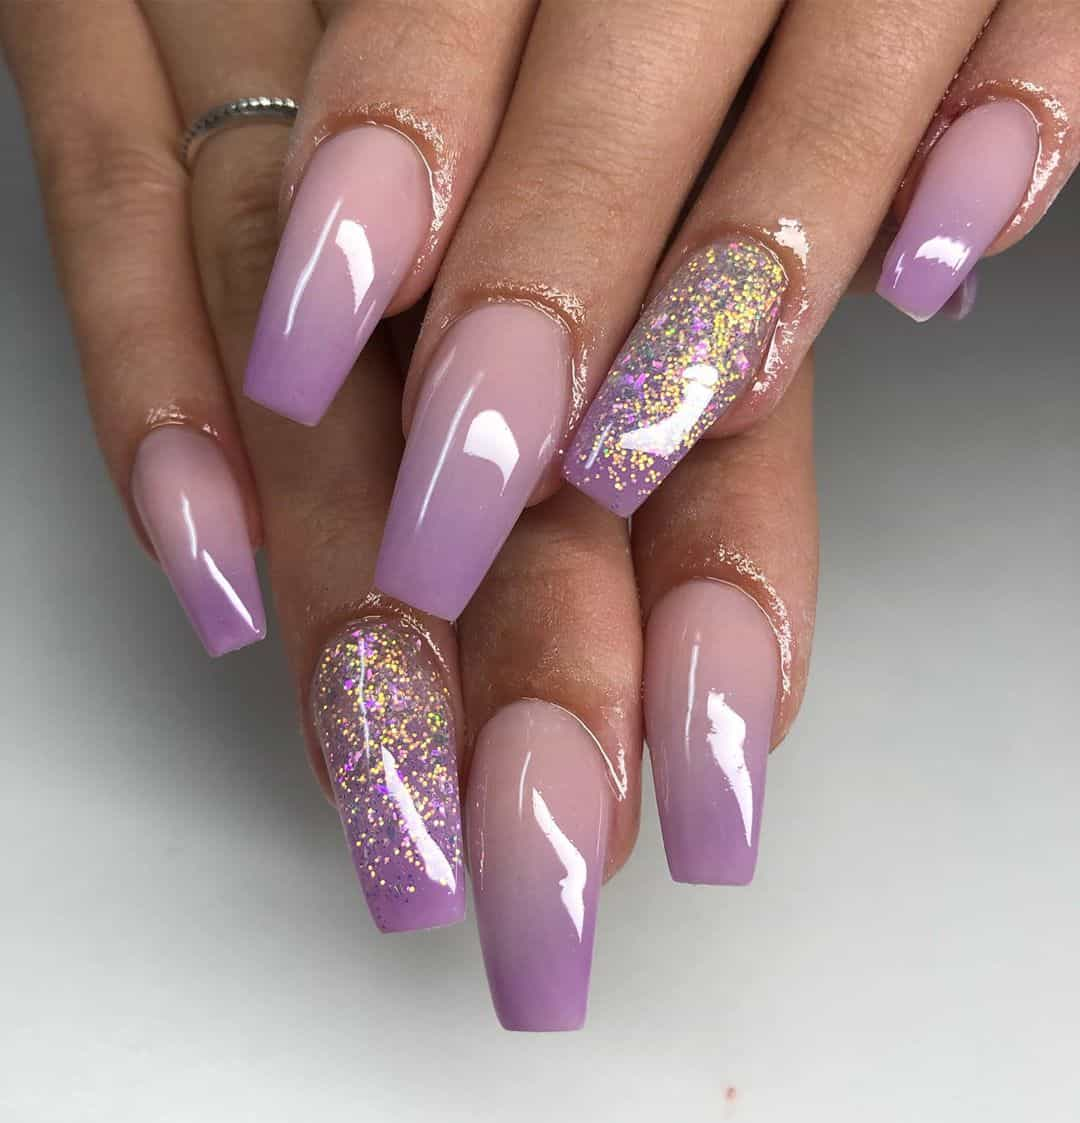 Warm Up Your Hands With These Perfect Nail Designs For The Winter - Feminine Colors